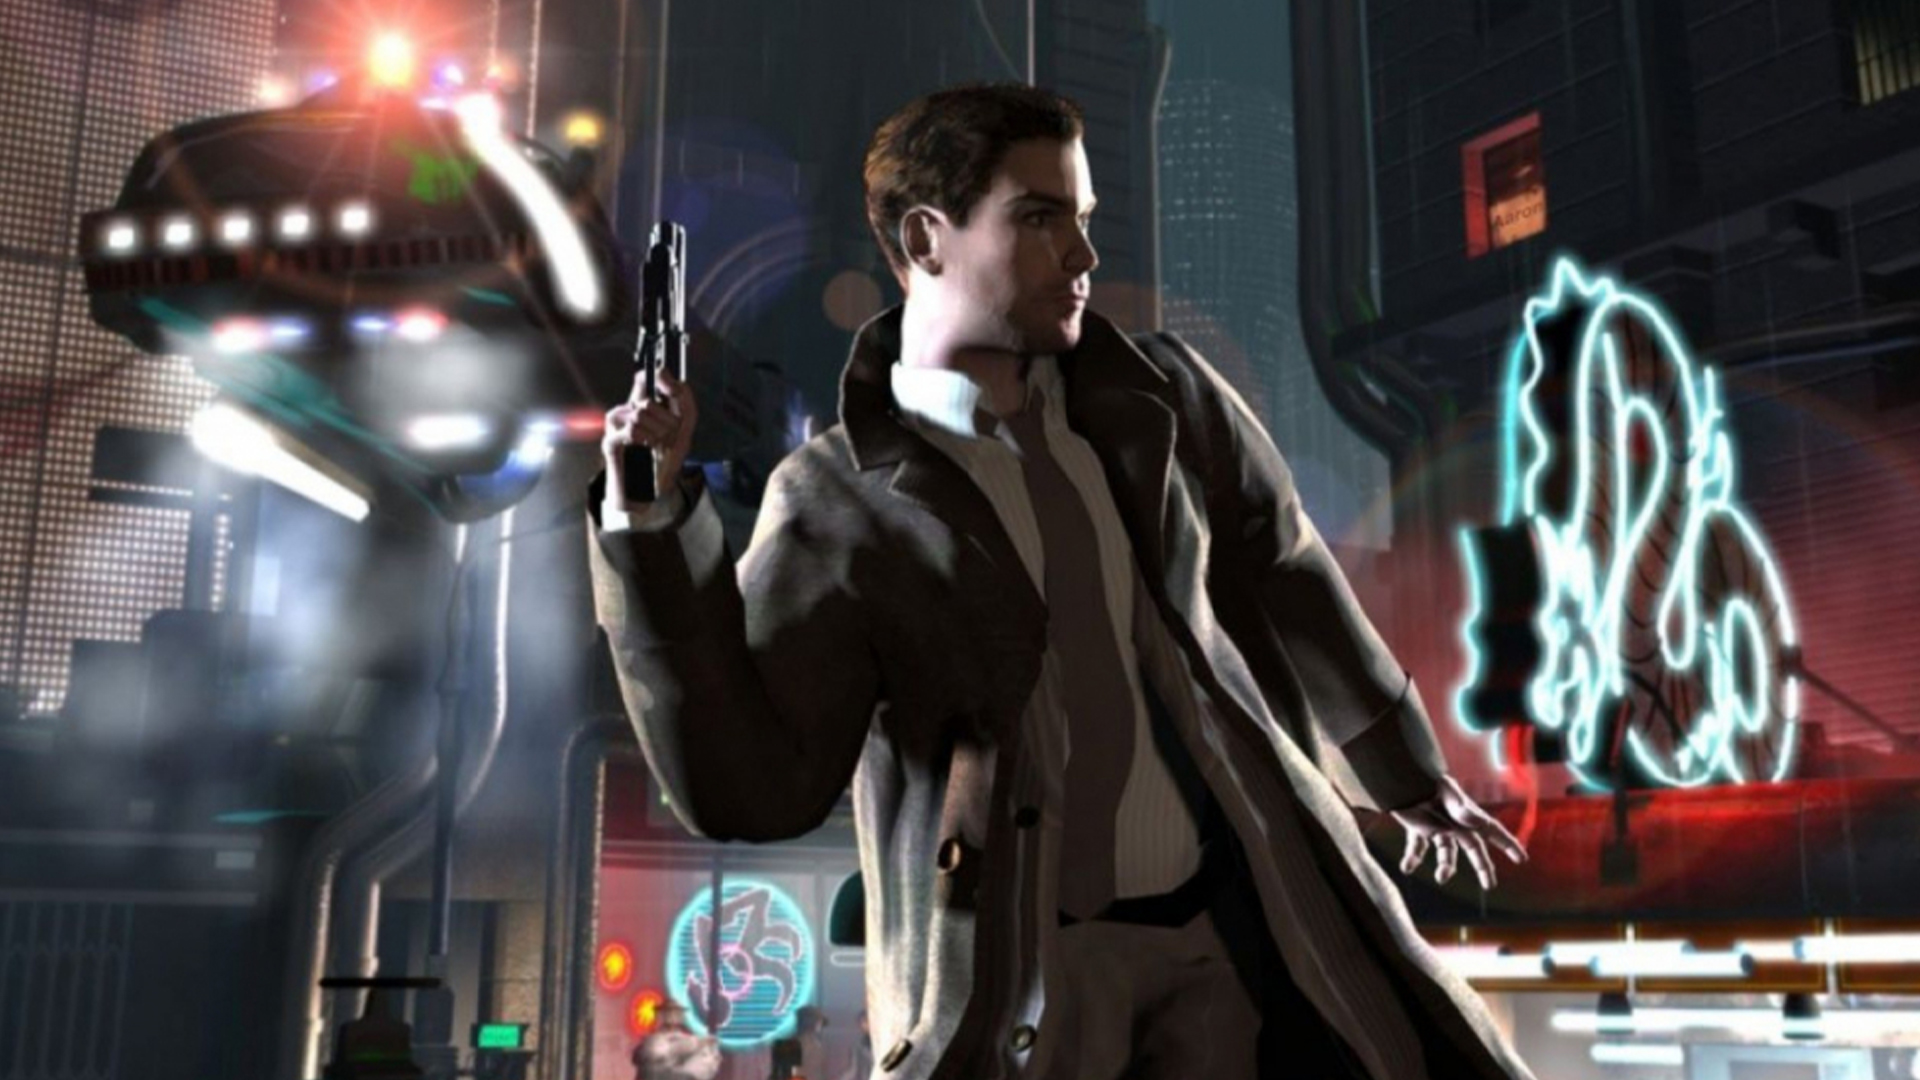 ScummVM adds support for Blade Runner and cloud saves